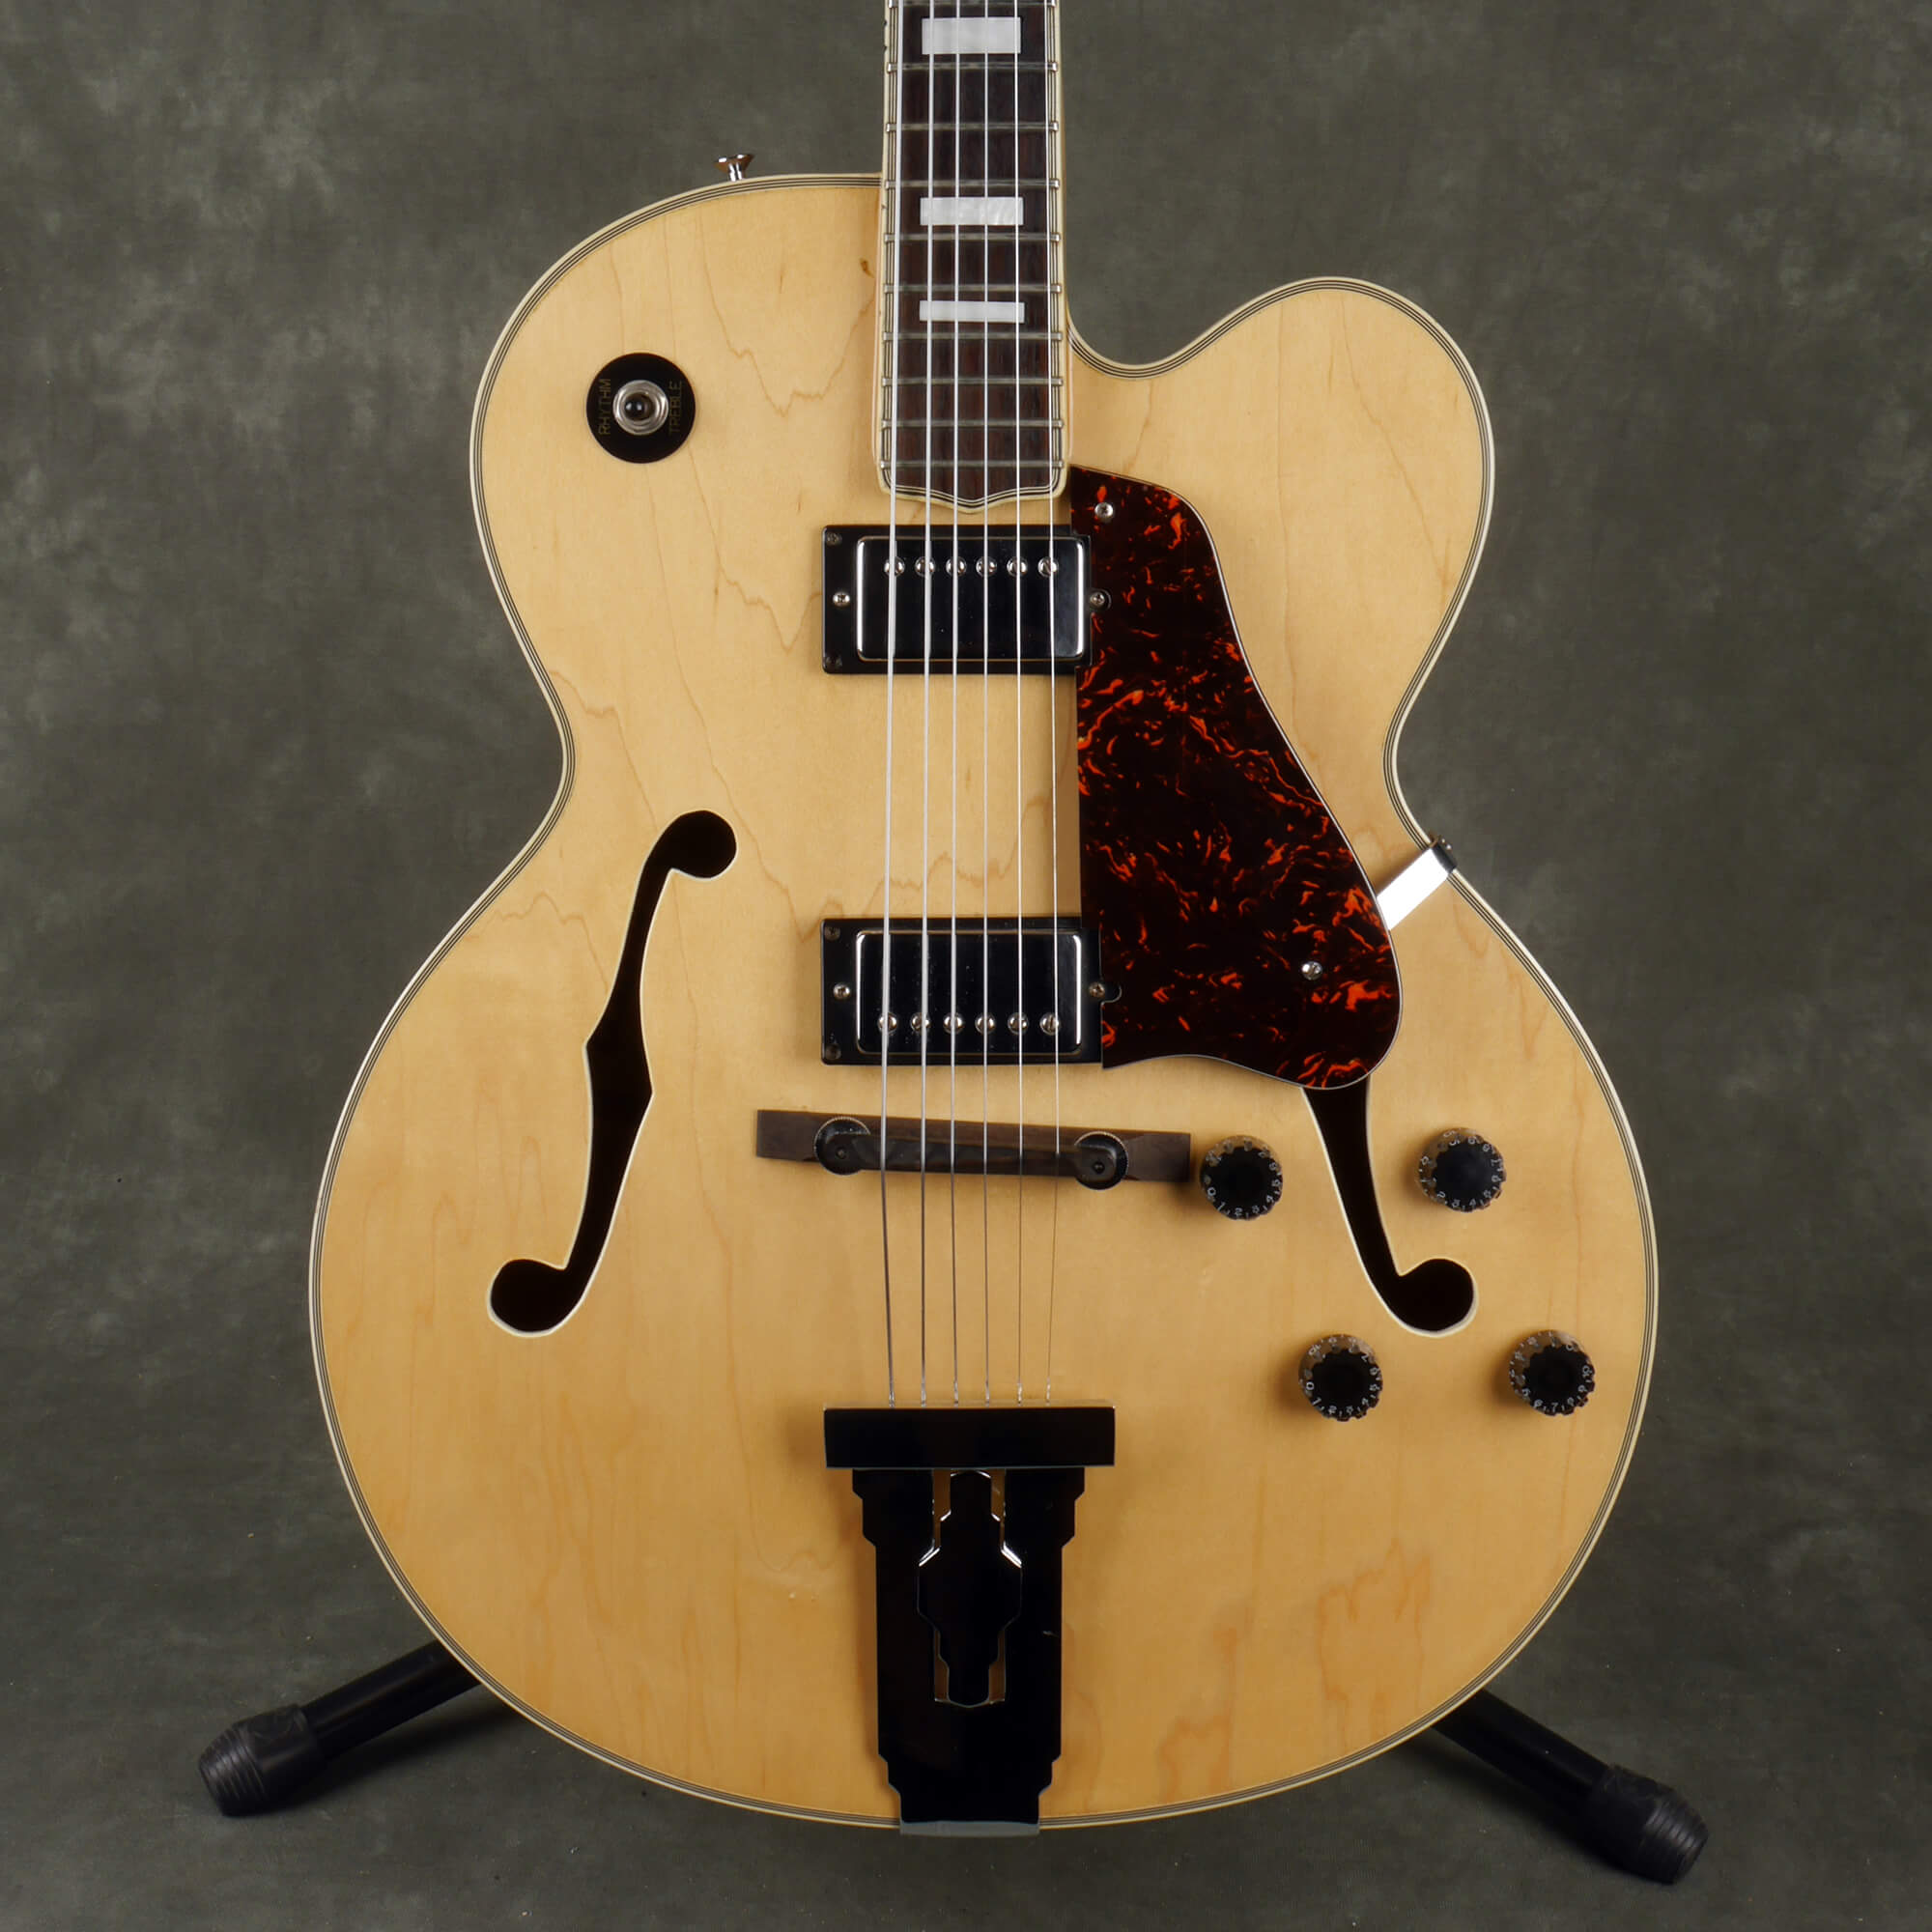 Antoria Jazzstar H794 Hollow Body - Blonde - 2nd Hand